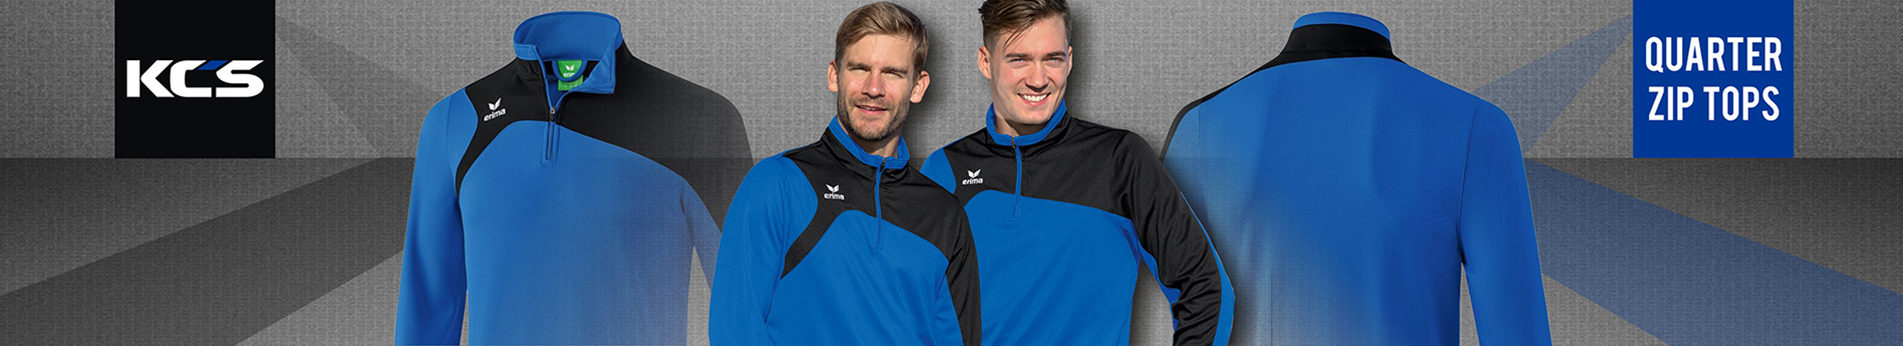 Quarter Zip tops Header 2018